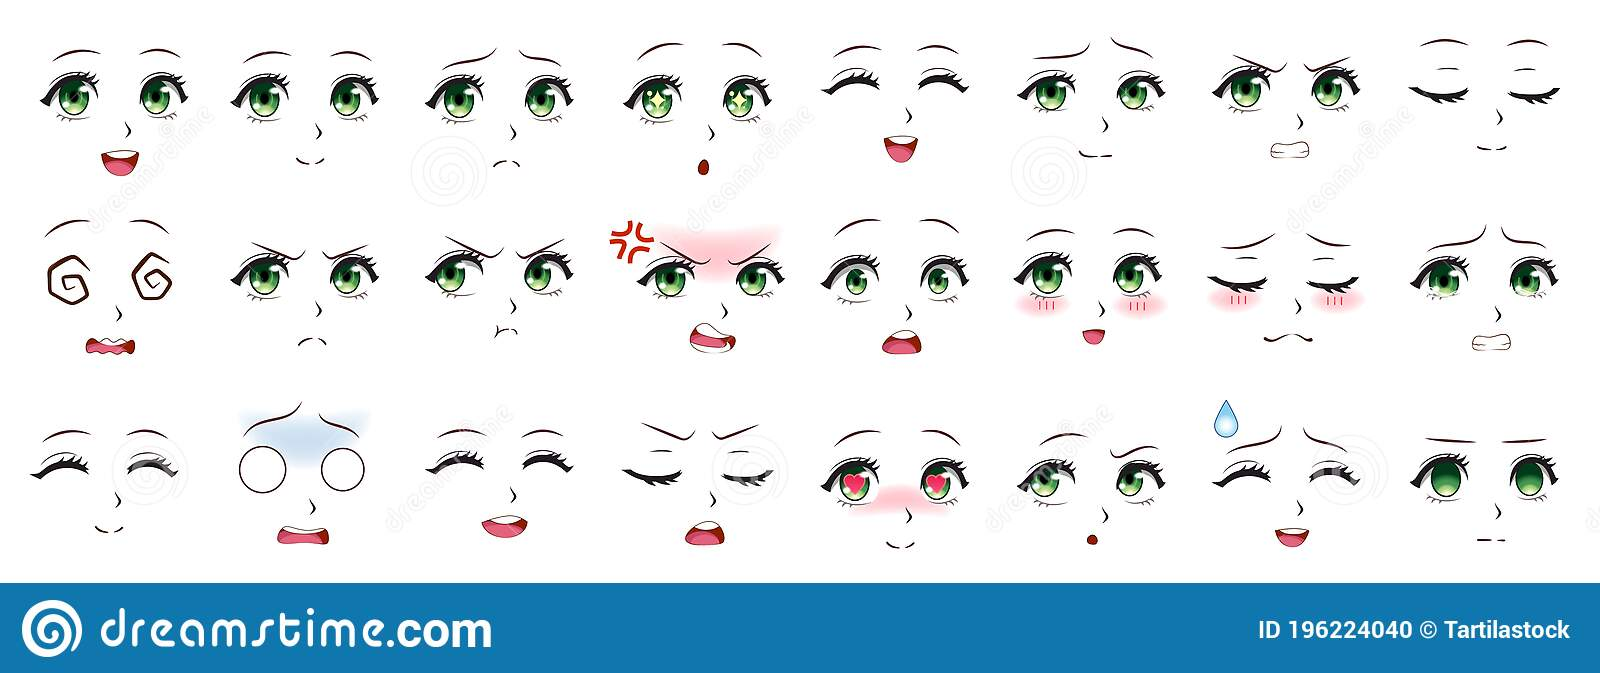 Manga Expression. Anime Girl Facial Expressions. Eyes, Mouth And